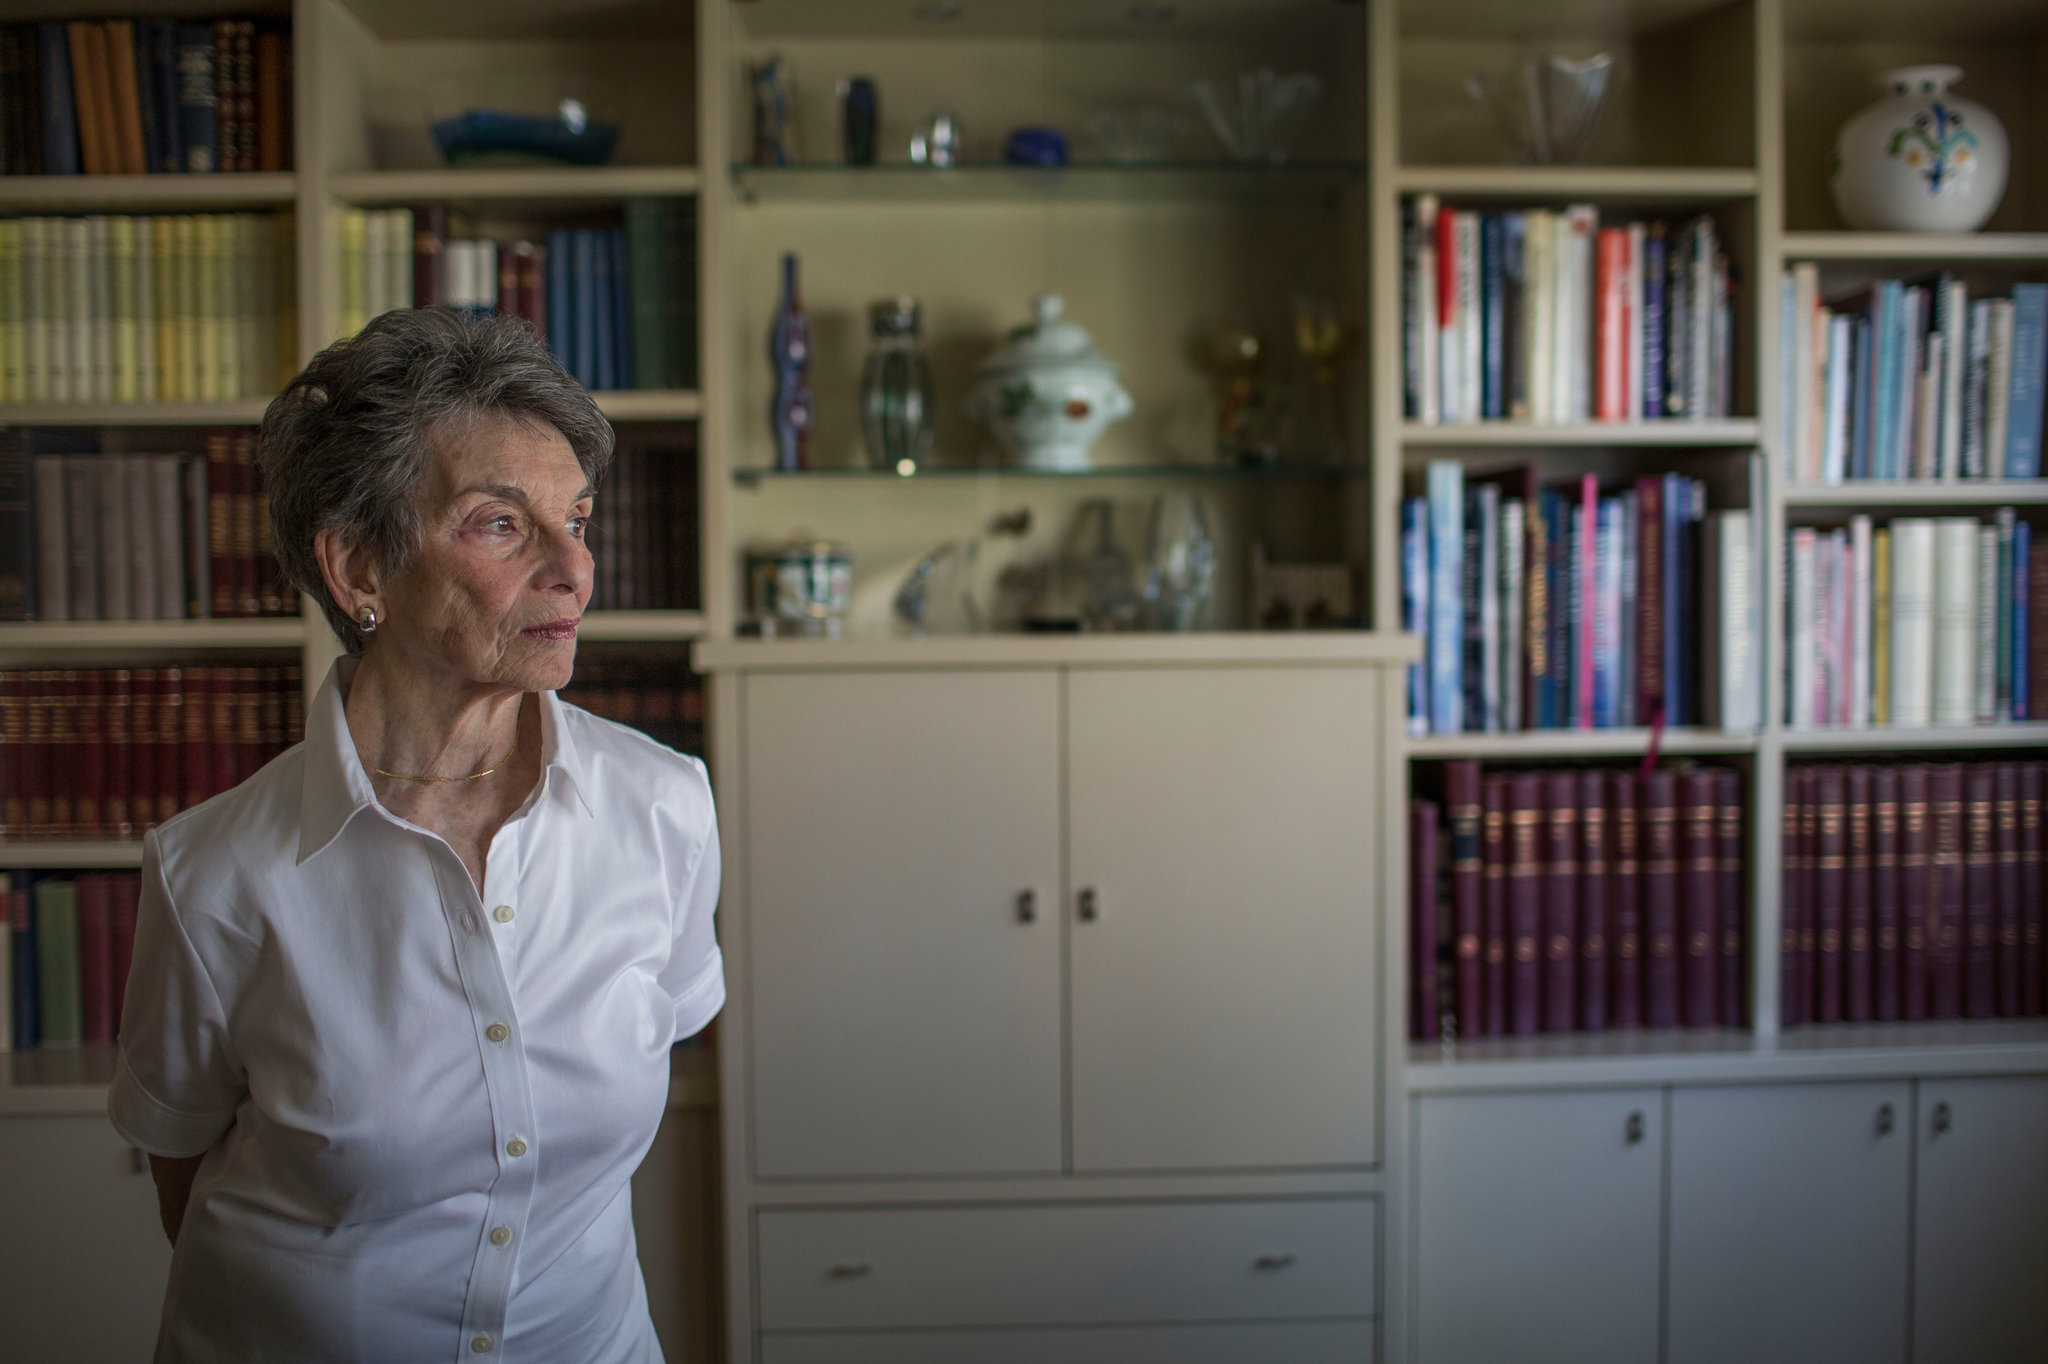 Renee Rabinowitz, photo by Uriel Sinai for The New York Times